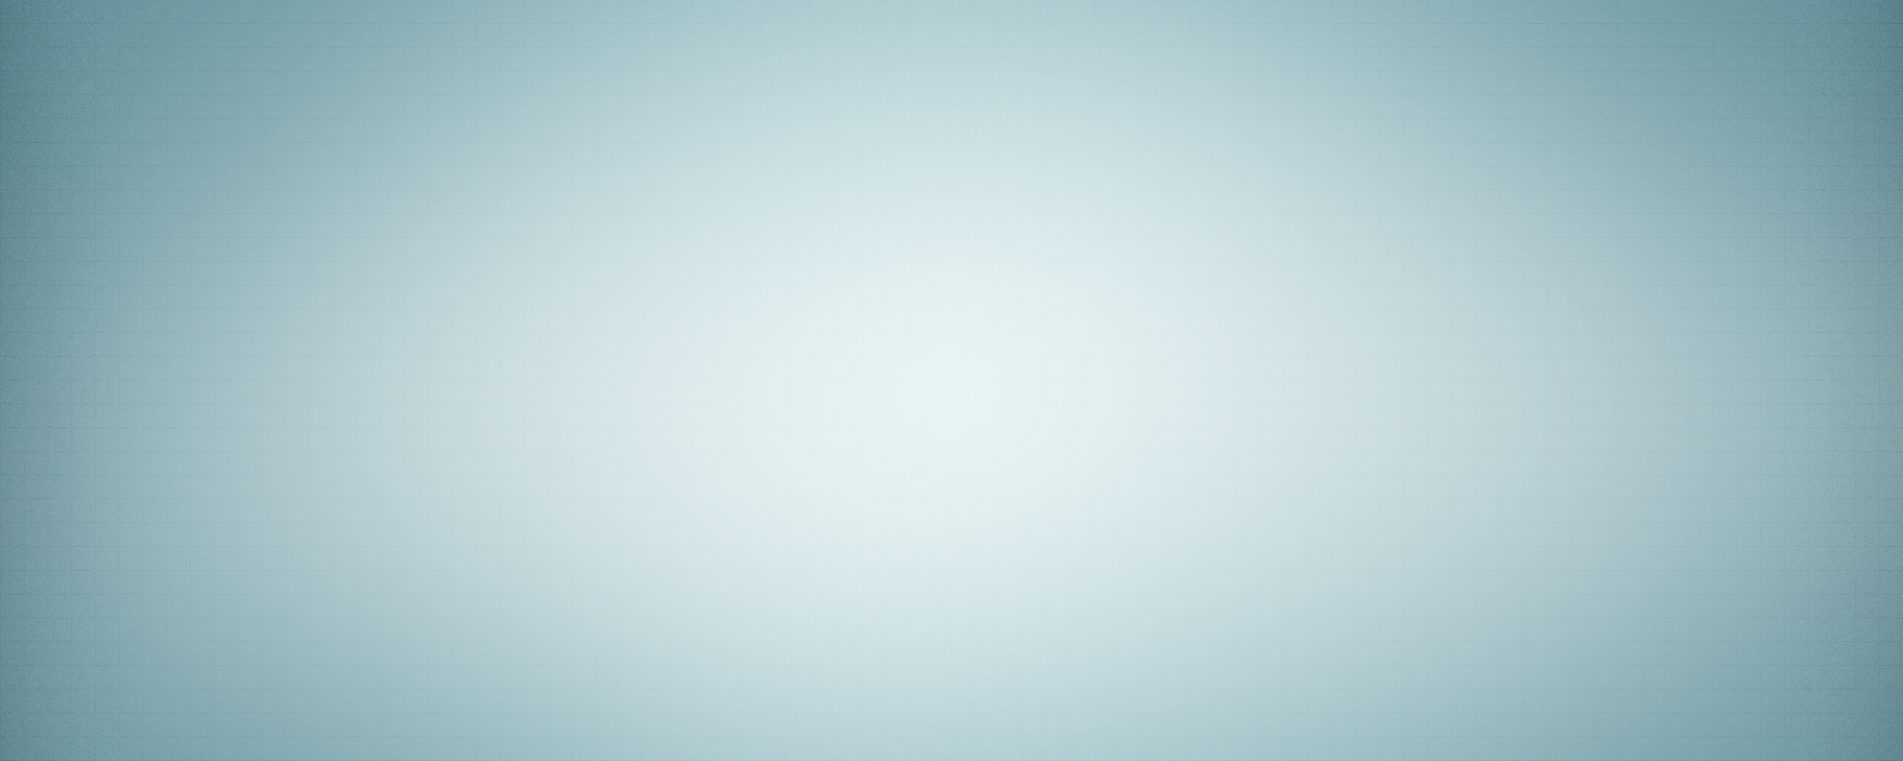 background_texture_spots_faded_50634_2560x1024